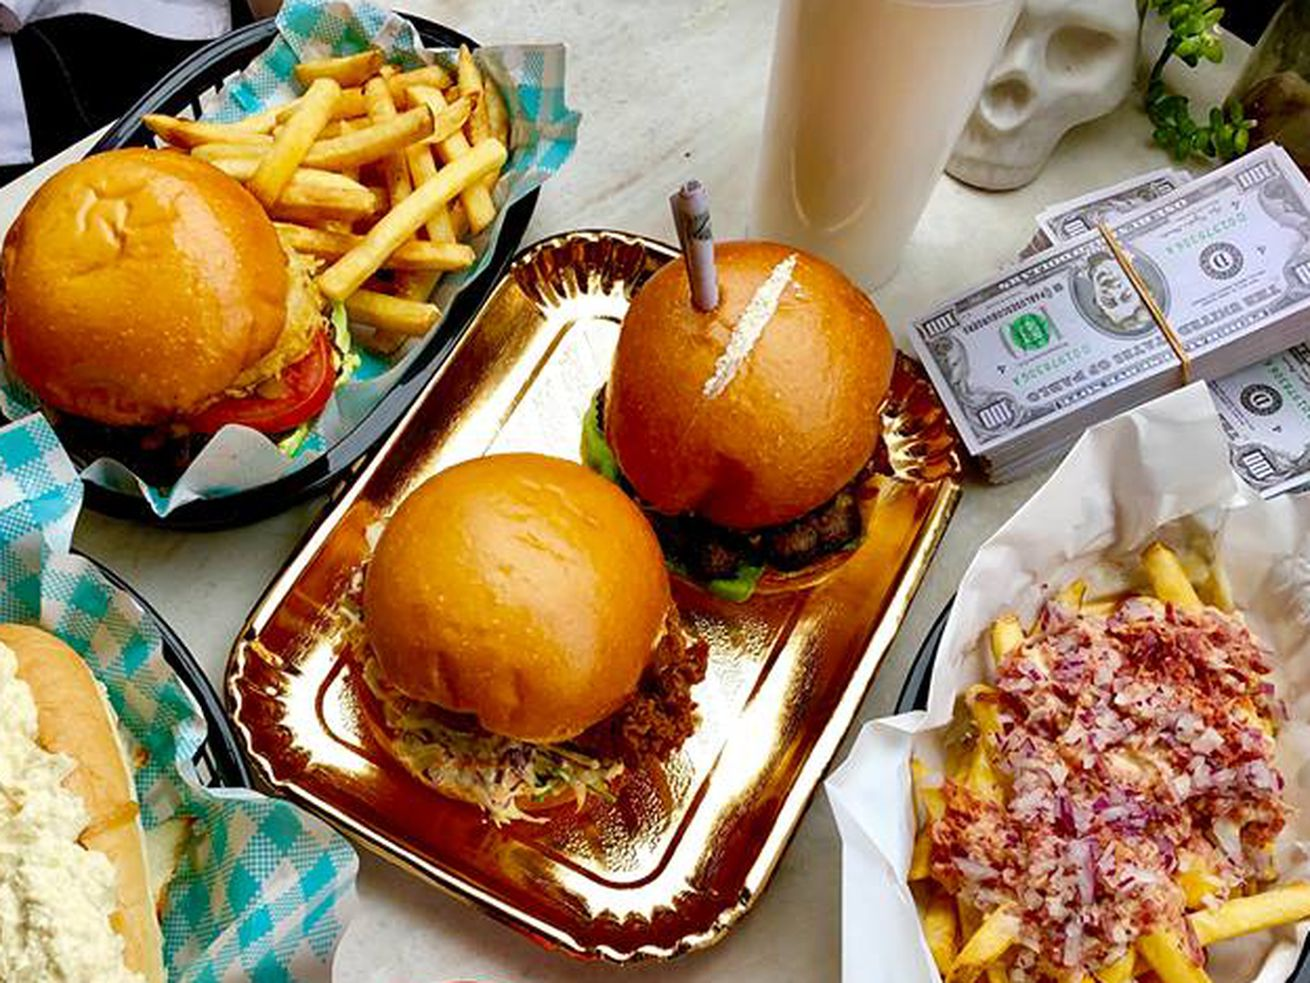 Pablo Escobar-Themed Restaurant Garnishes Burgers With Fake Cocaine